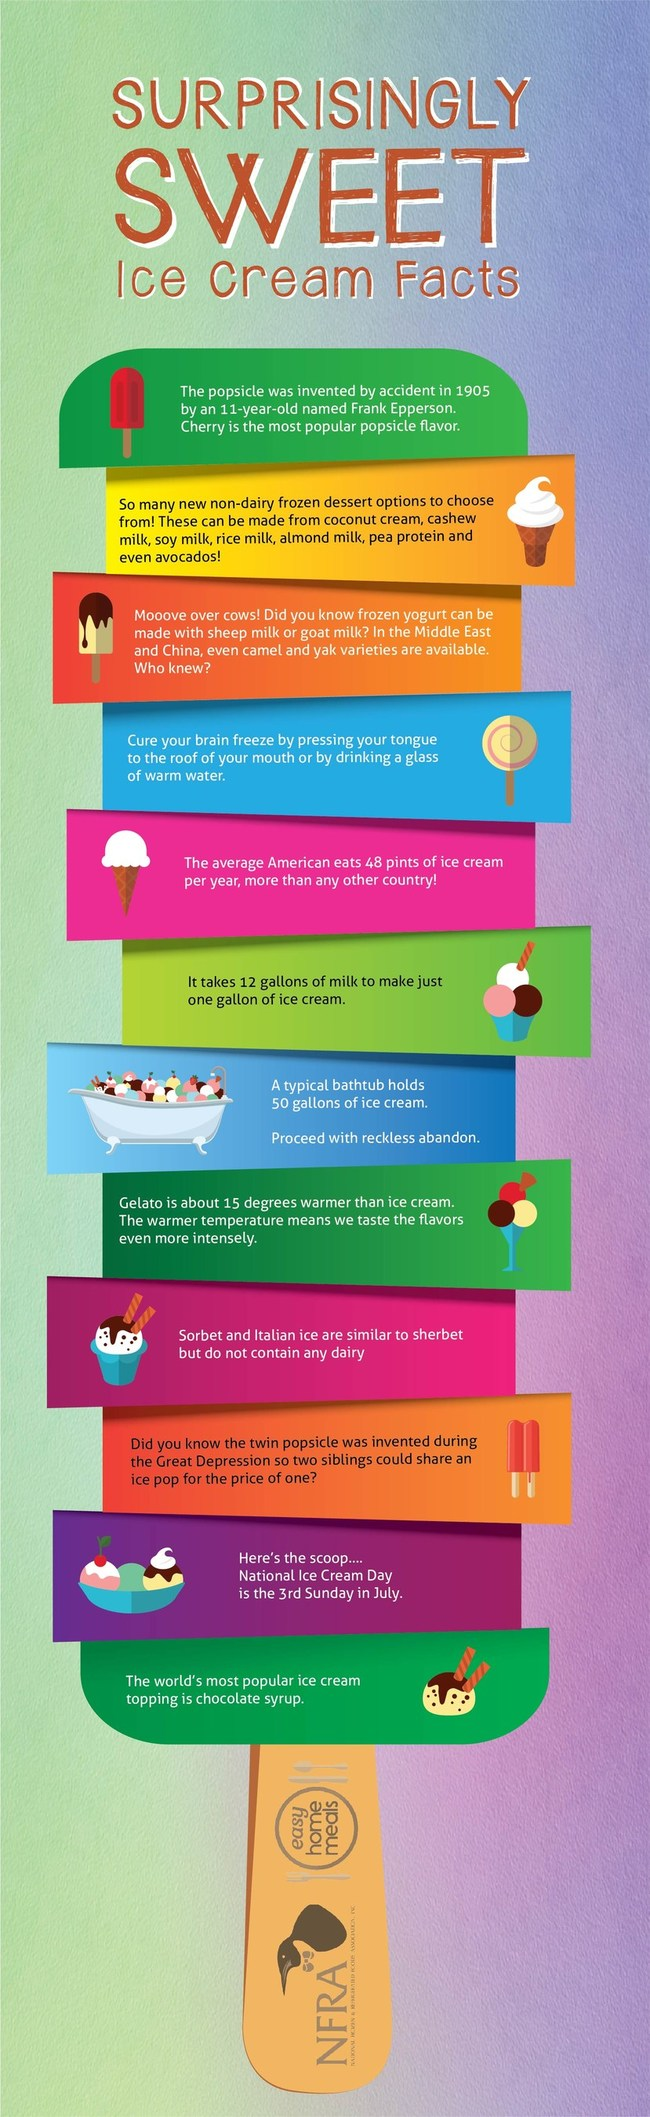 """It's National Ice Cream Month! To celebrate, the National Frozen & Refrigerated Foods Association shares """"Some Surprisingly Sweet Ice Cream Facts,"""" as well as a delicious Ice Cream Sundae Cupcake recipe and a chance to Win Ice Cream for a Year."""